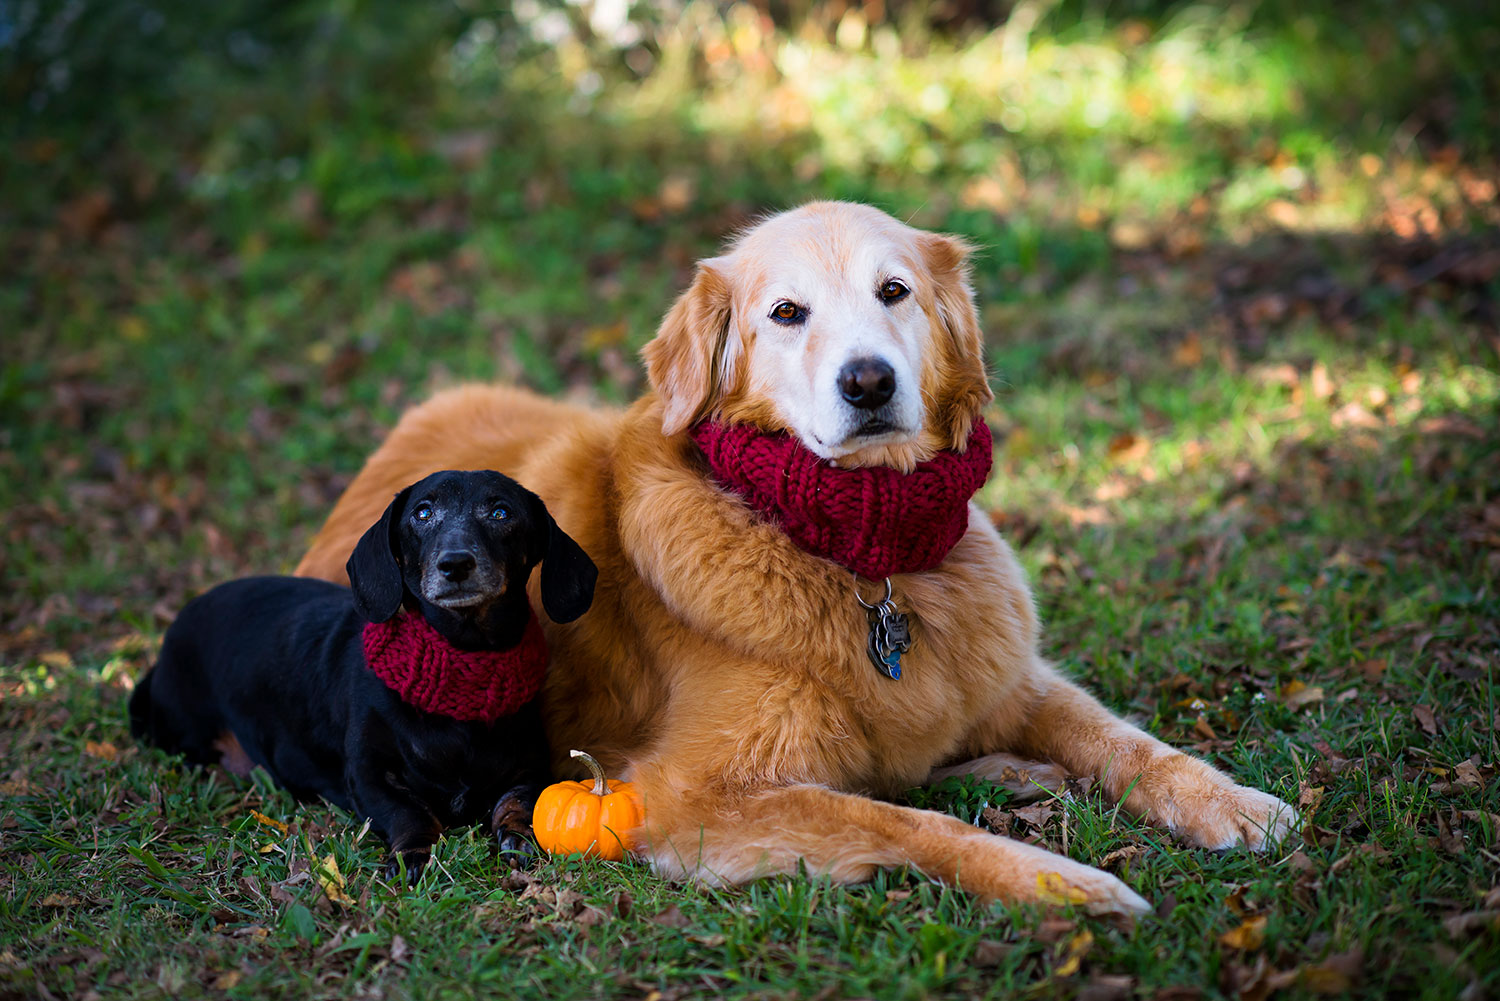 golden retriever and black dachshund both wear red knitted cowls and pose with a tiny orange pumpkin